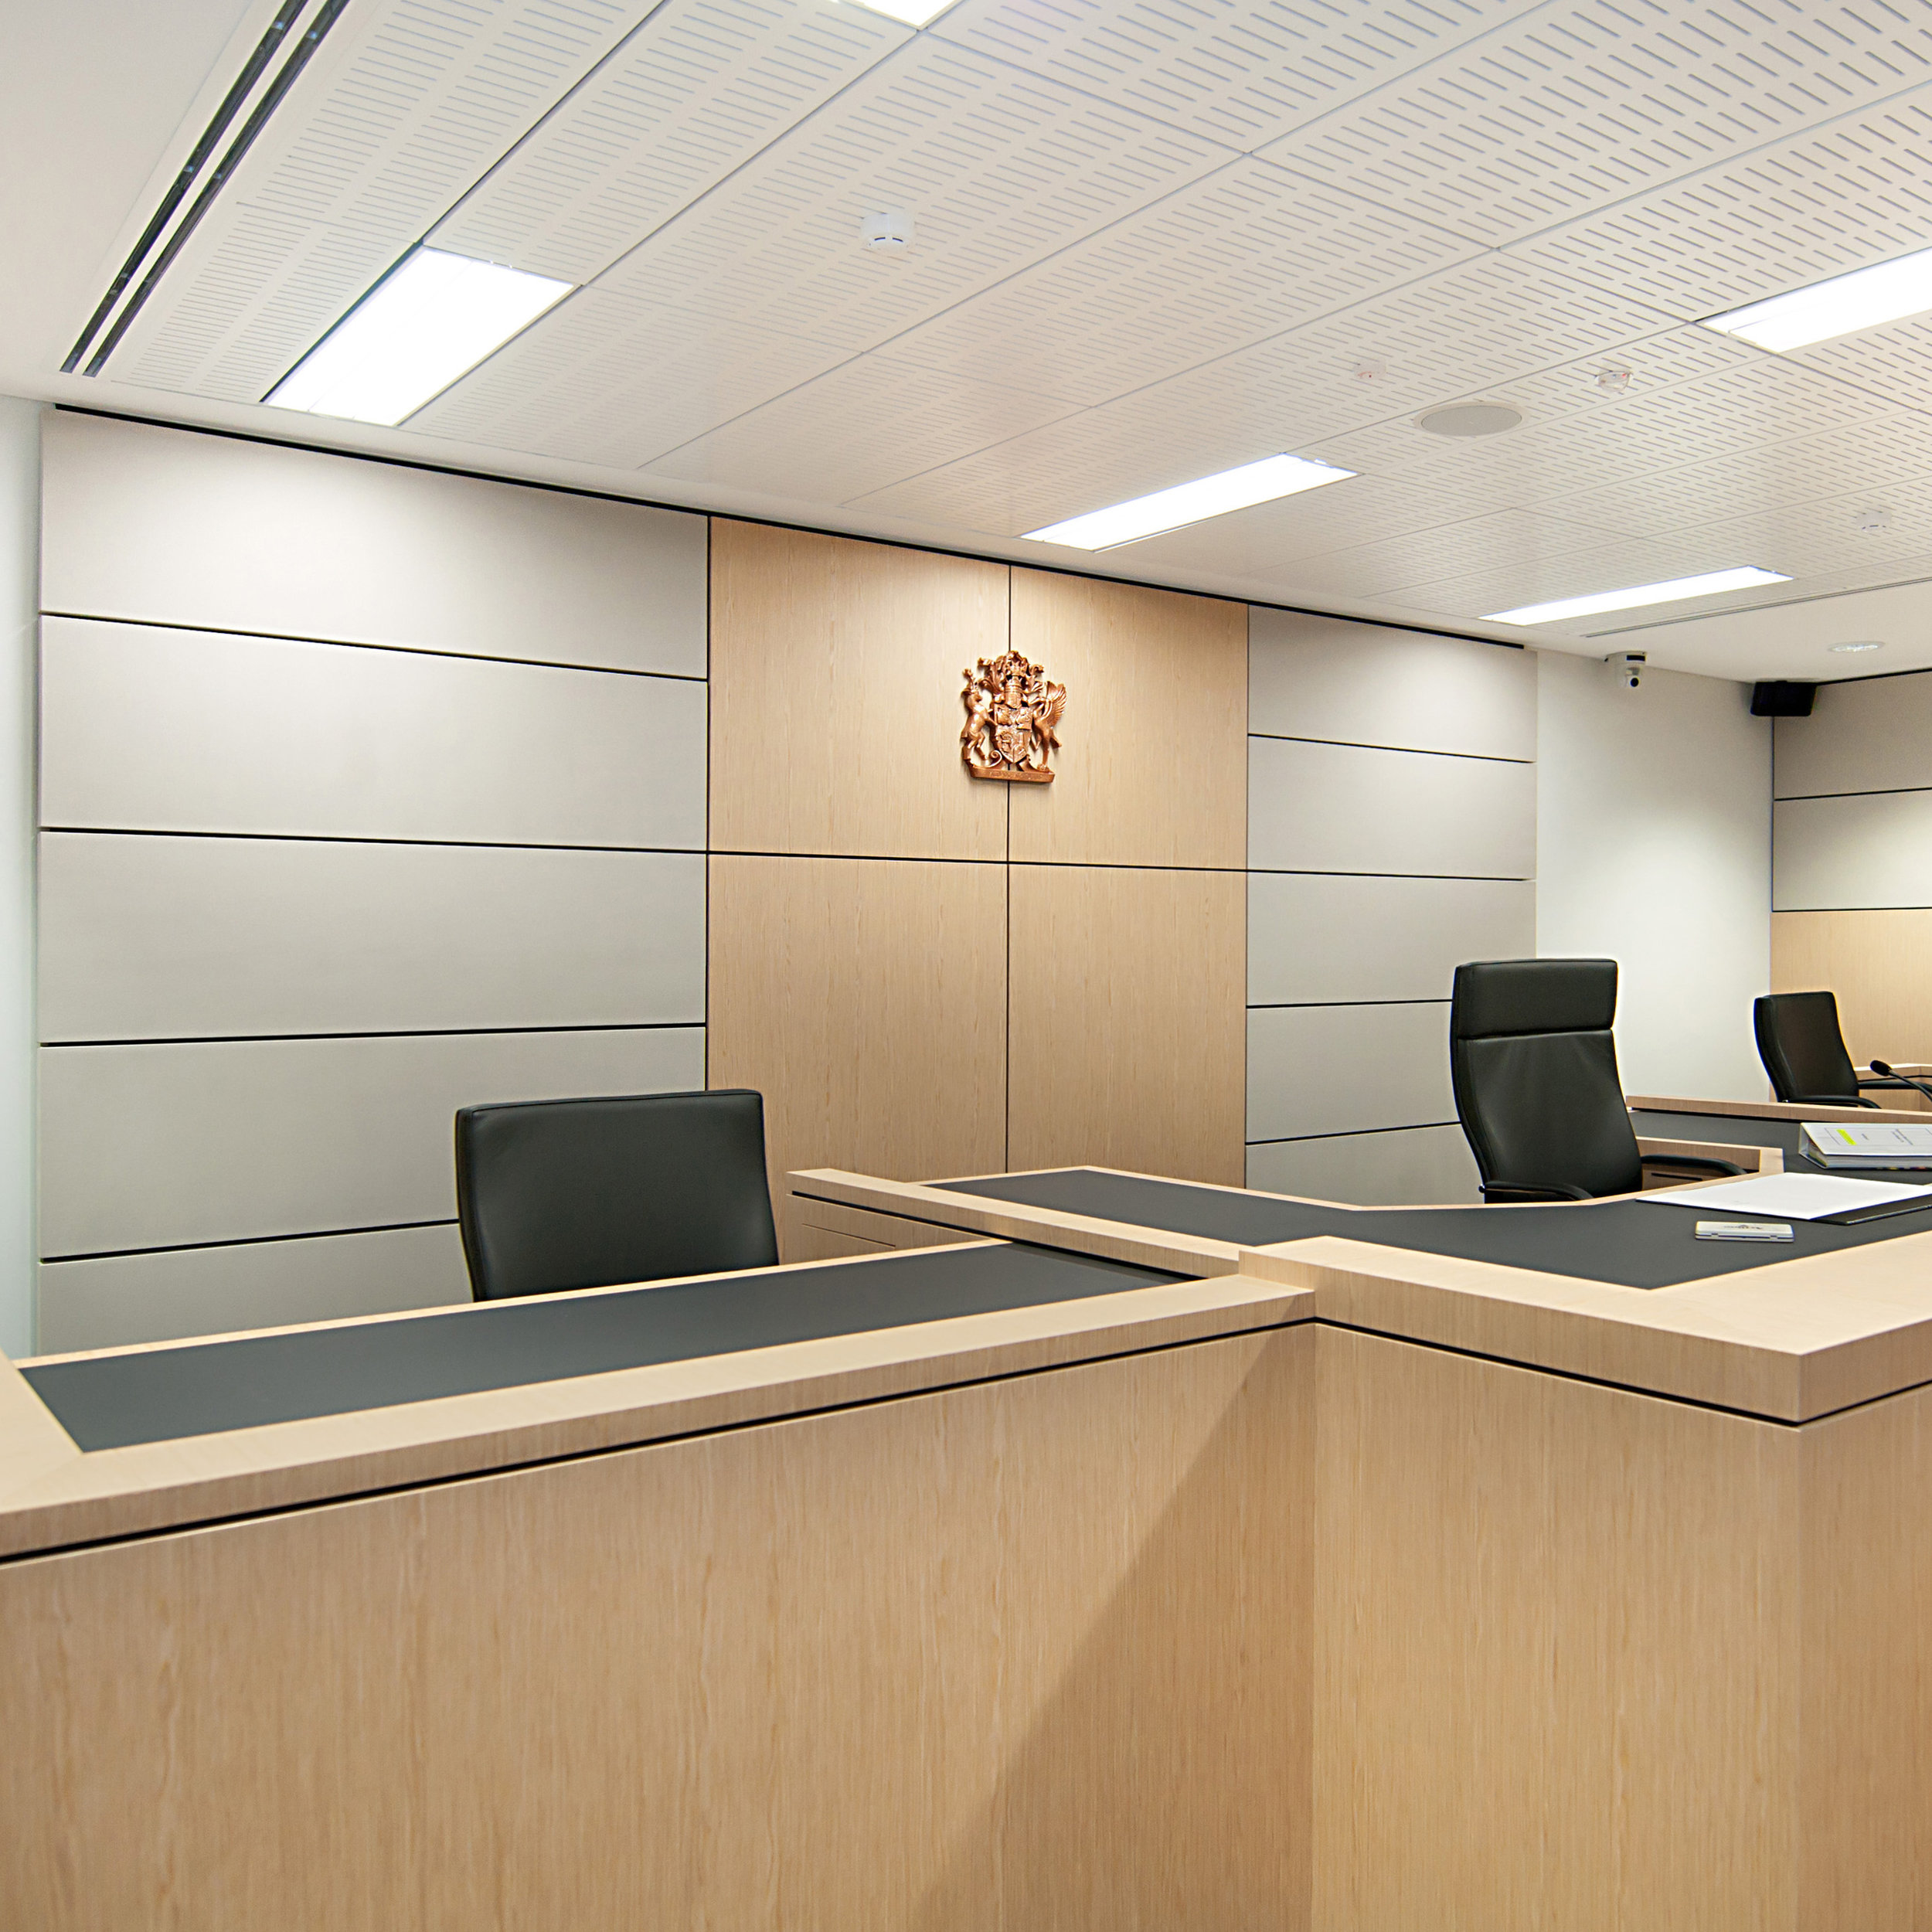 Acoustic modules making it easy to hear in a court room